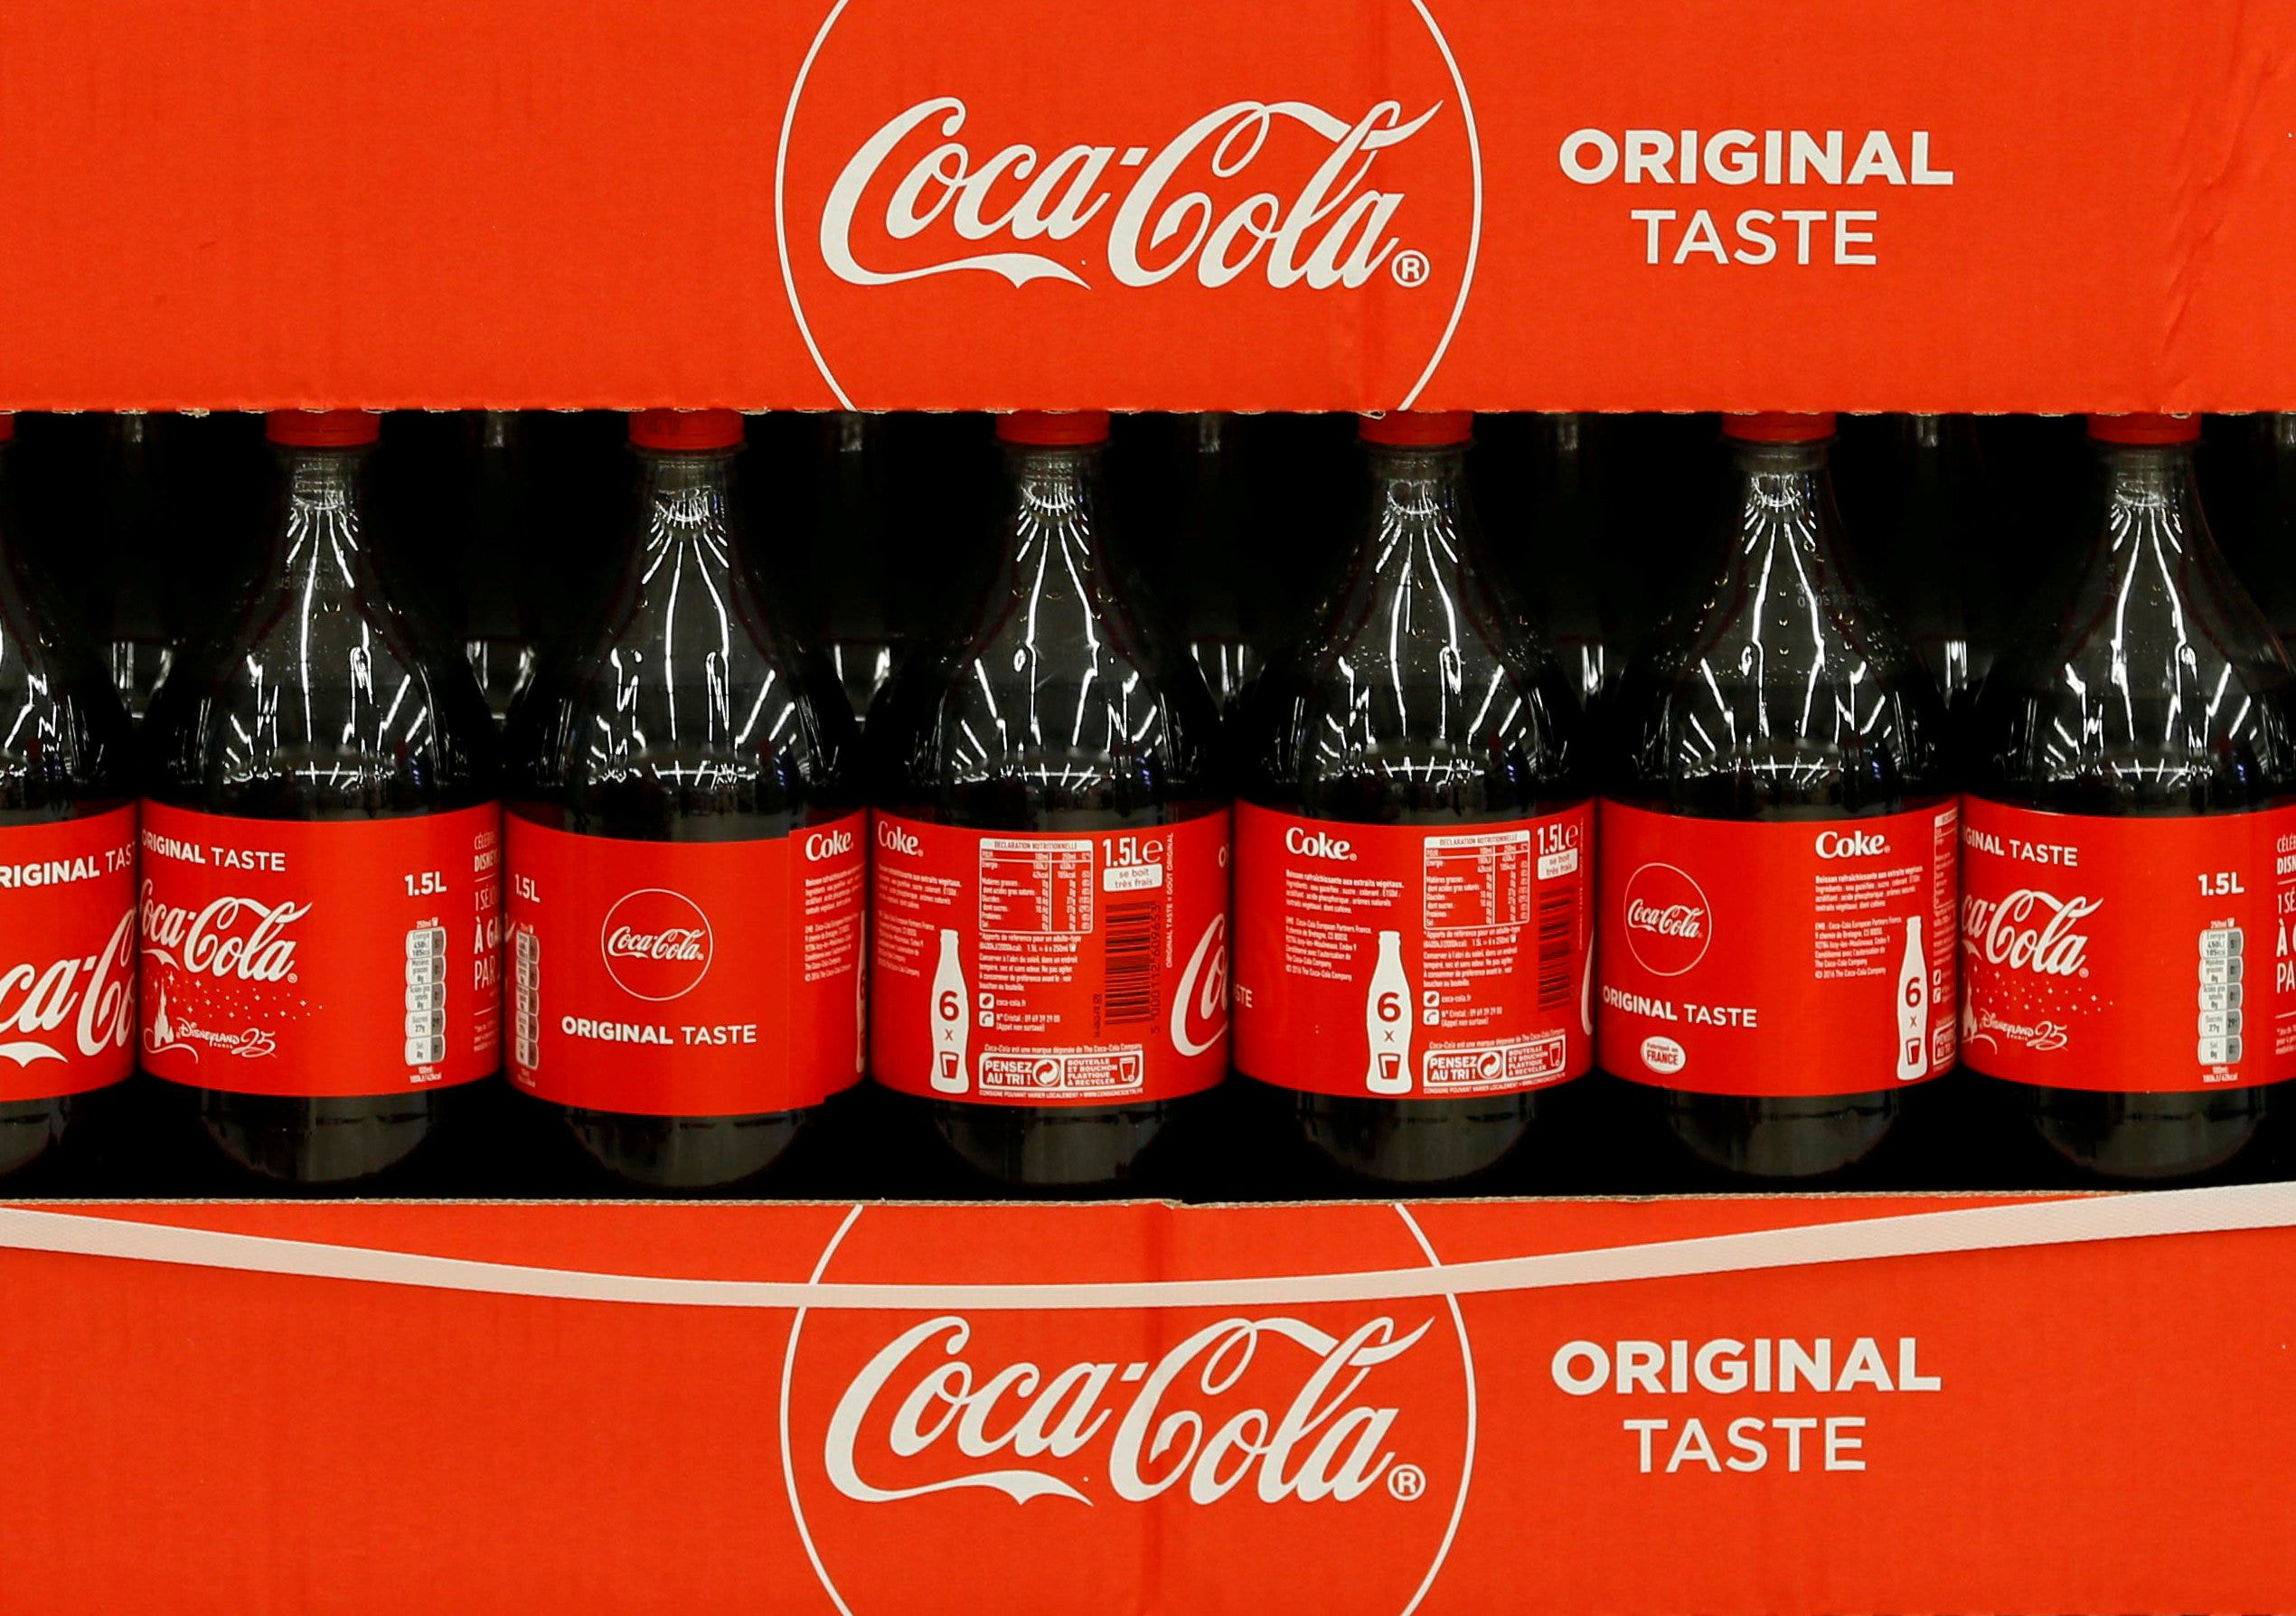 Coca-Cola plans layoffs offers 4000 buyouts as company announces global reorganization – Fox Business